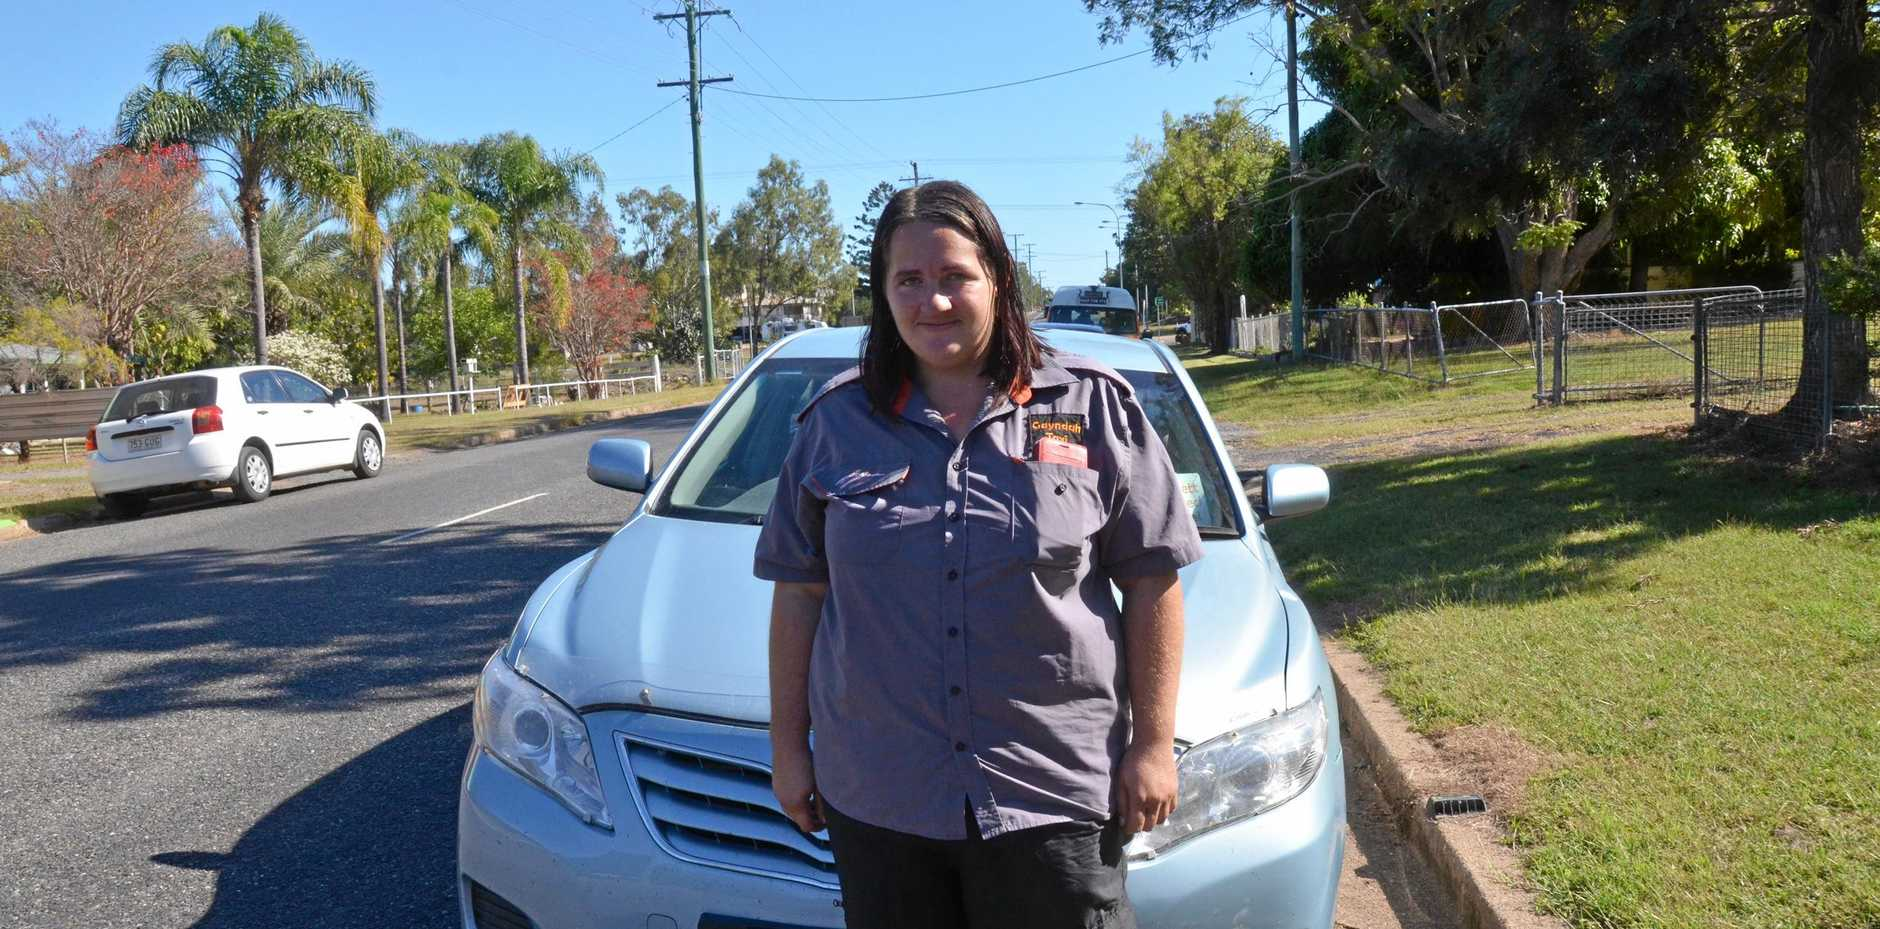 RIDE ON: Mundubbera Ride Share driver Sylvia Stevens stands in front of the service's Toyota Camry.